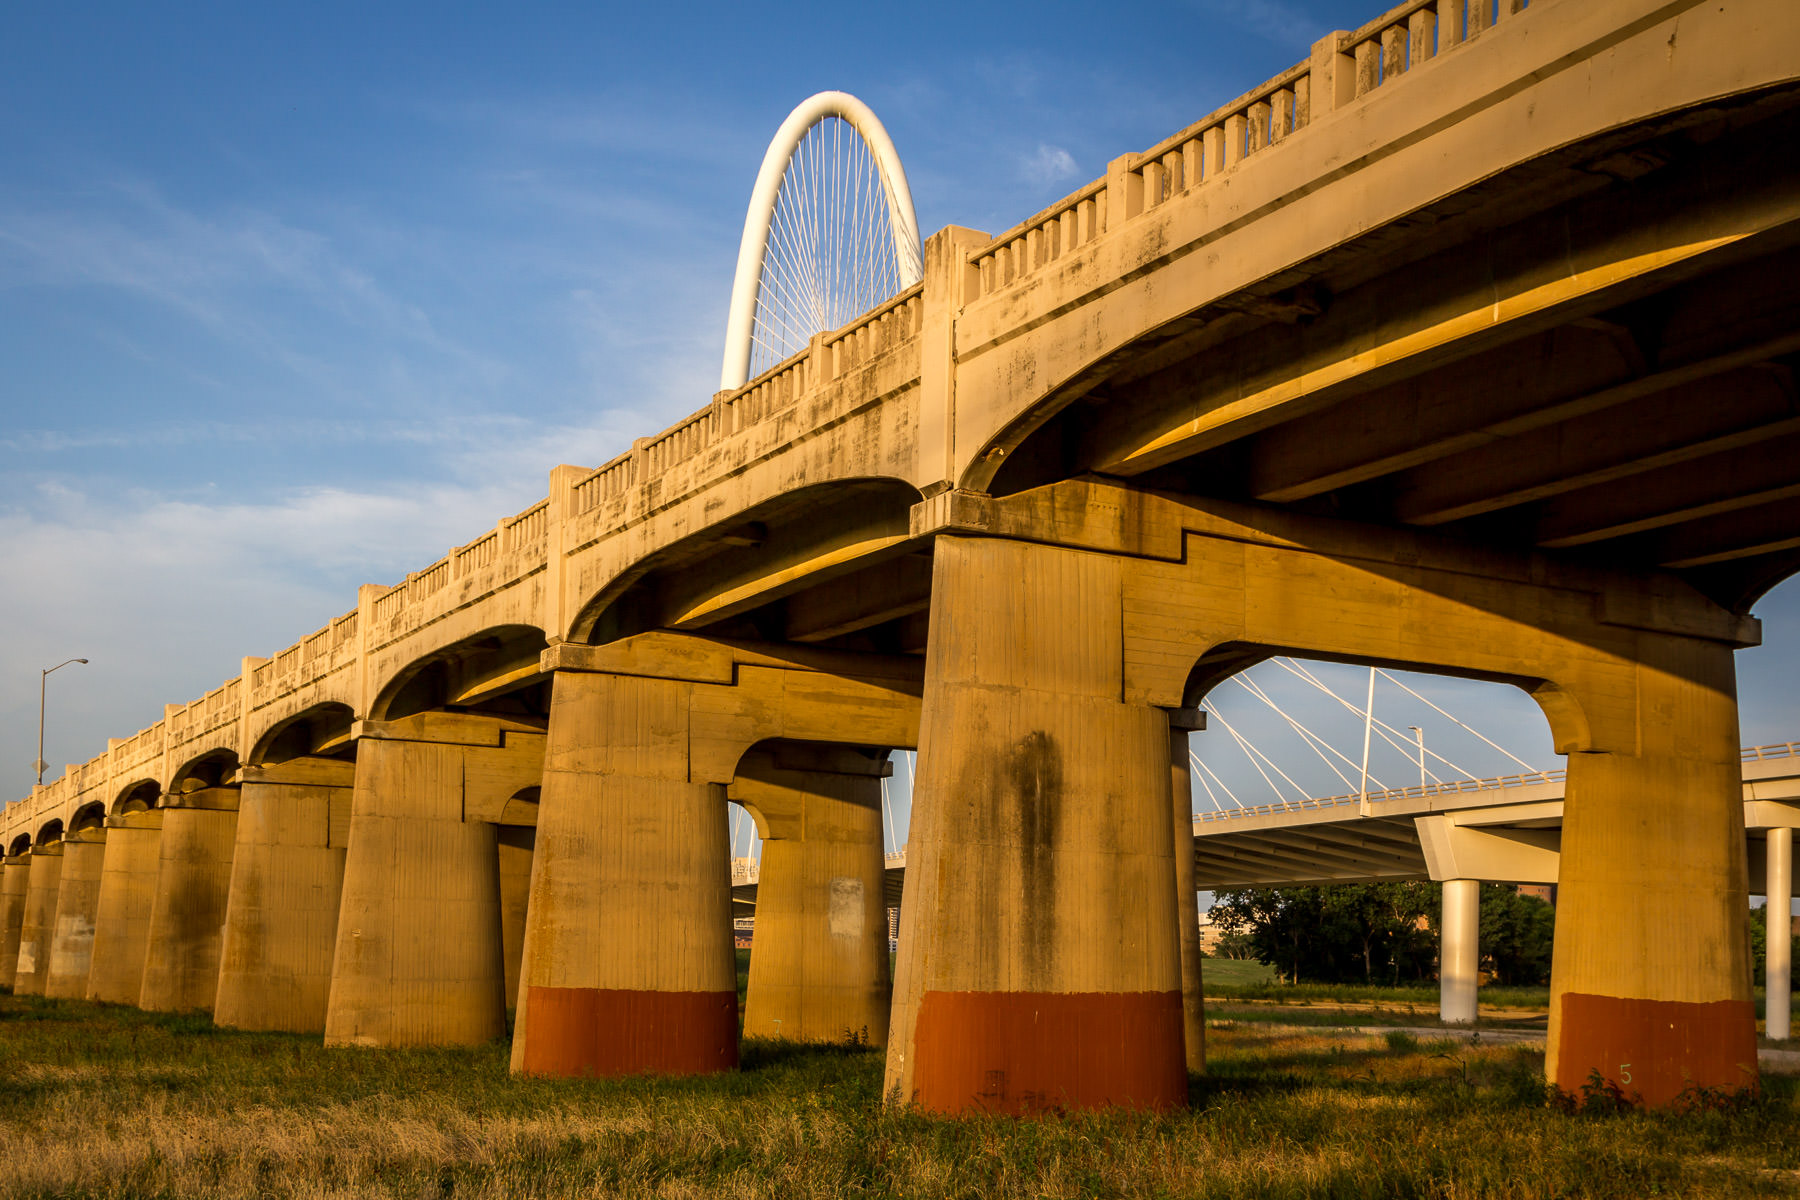 Dallas' Continental Avenue Bridge spans the Trinity River as the Santiago Calatrava-designed Margaret Hunt Hill Bridge looms in the background.